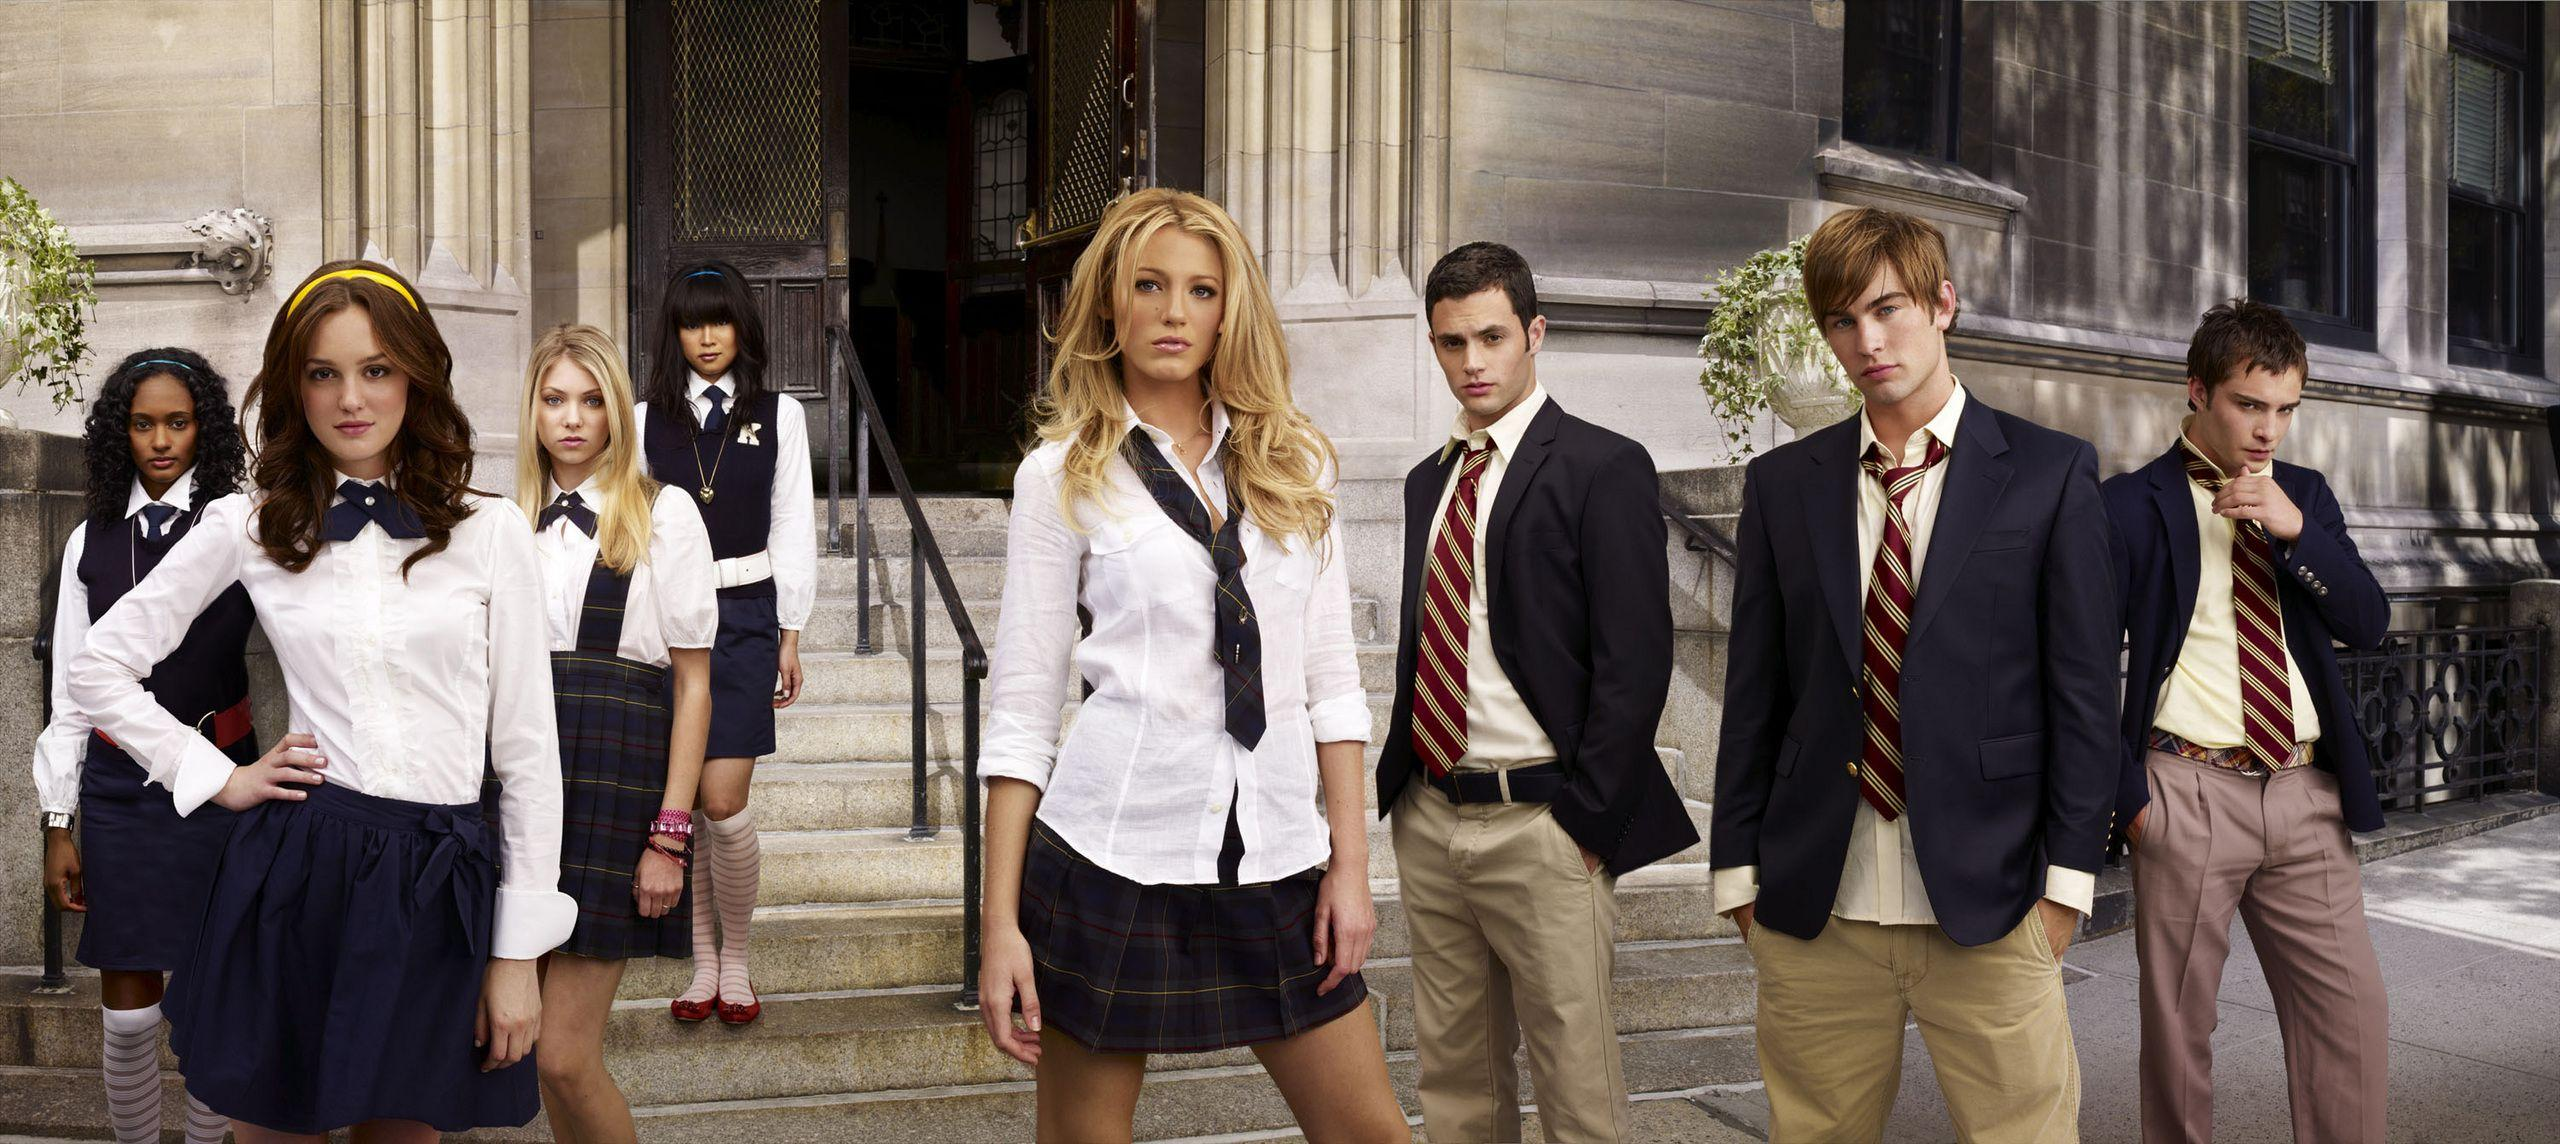 Gossip Girl HD Wallpapers for desktop download